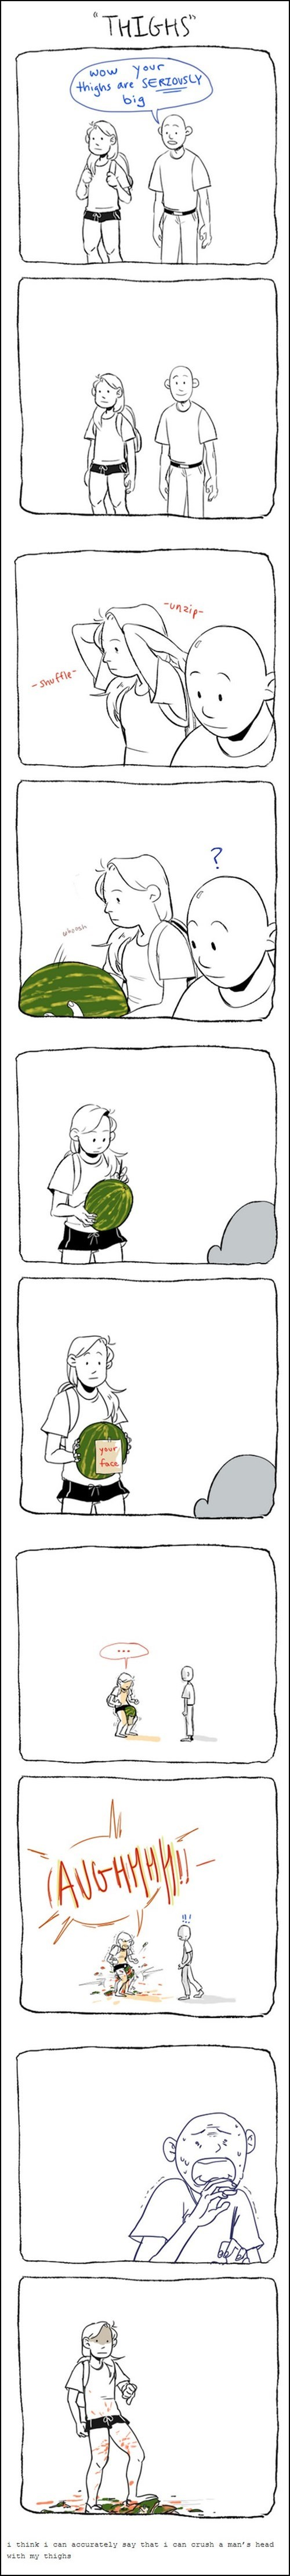 watermelon,jerks,thighs,web comics